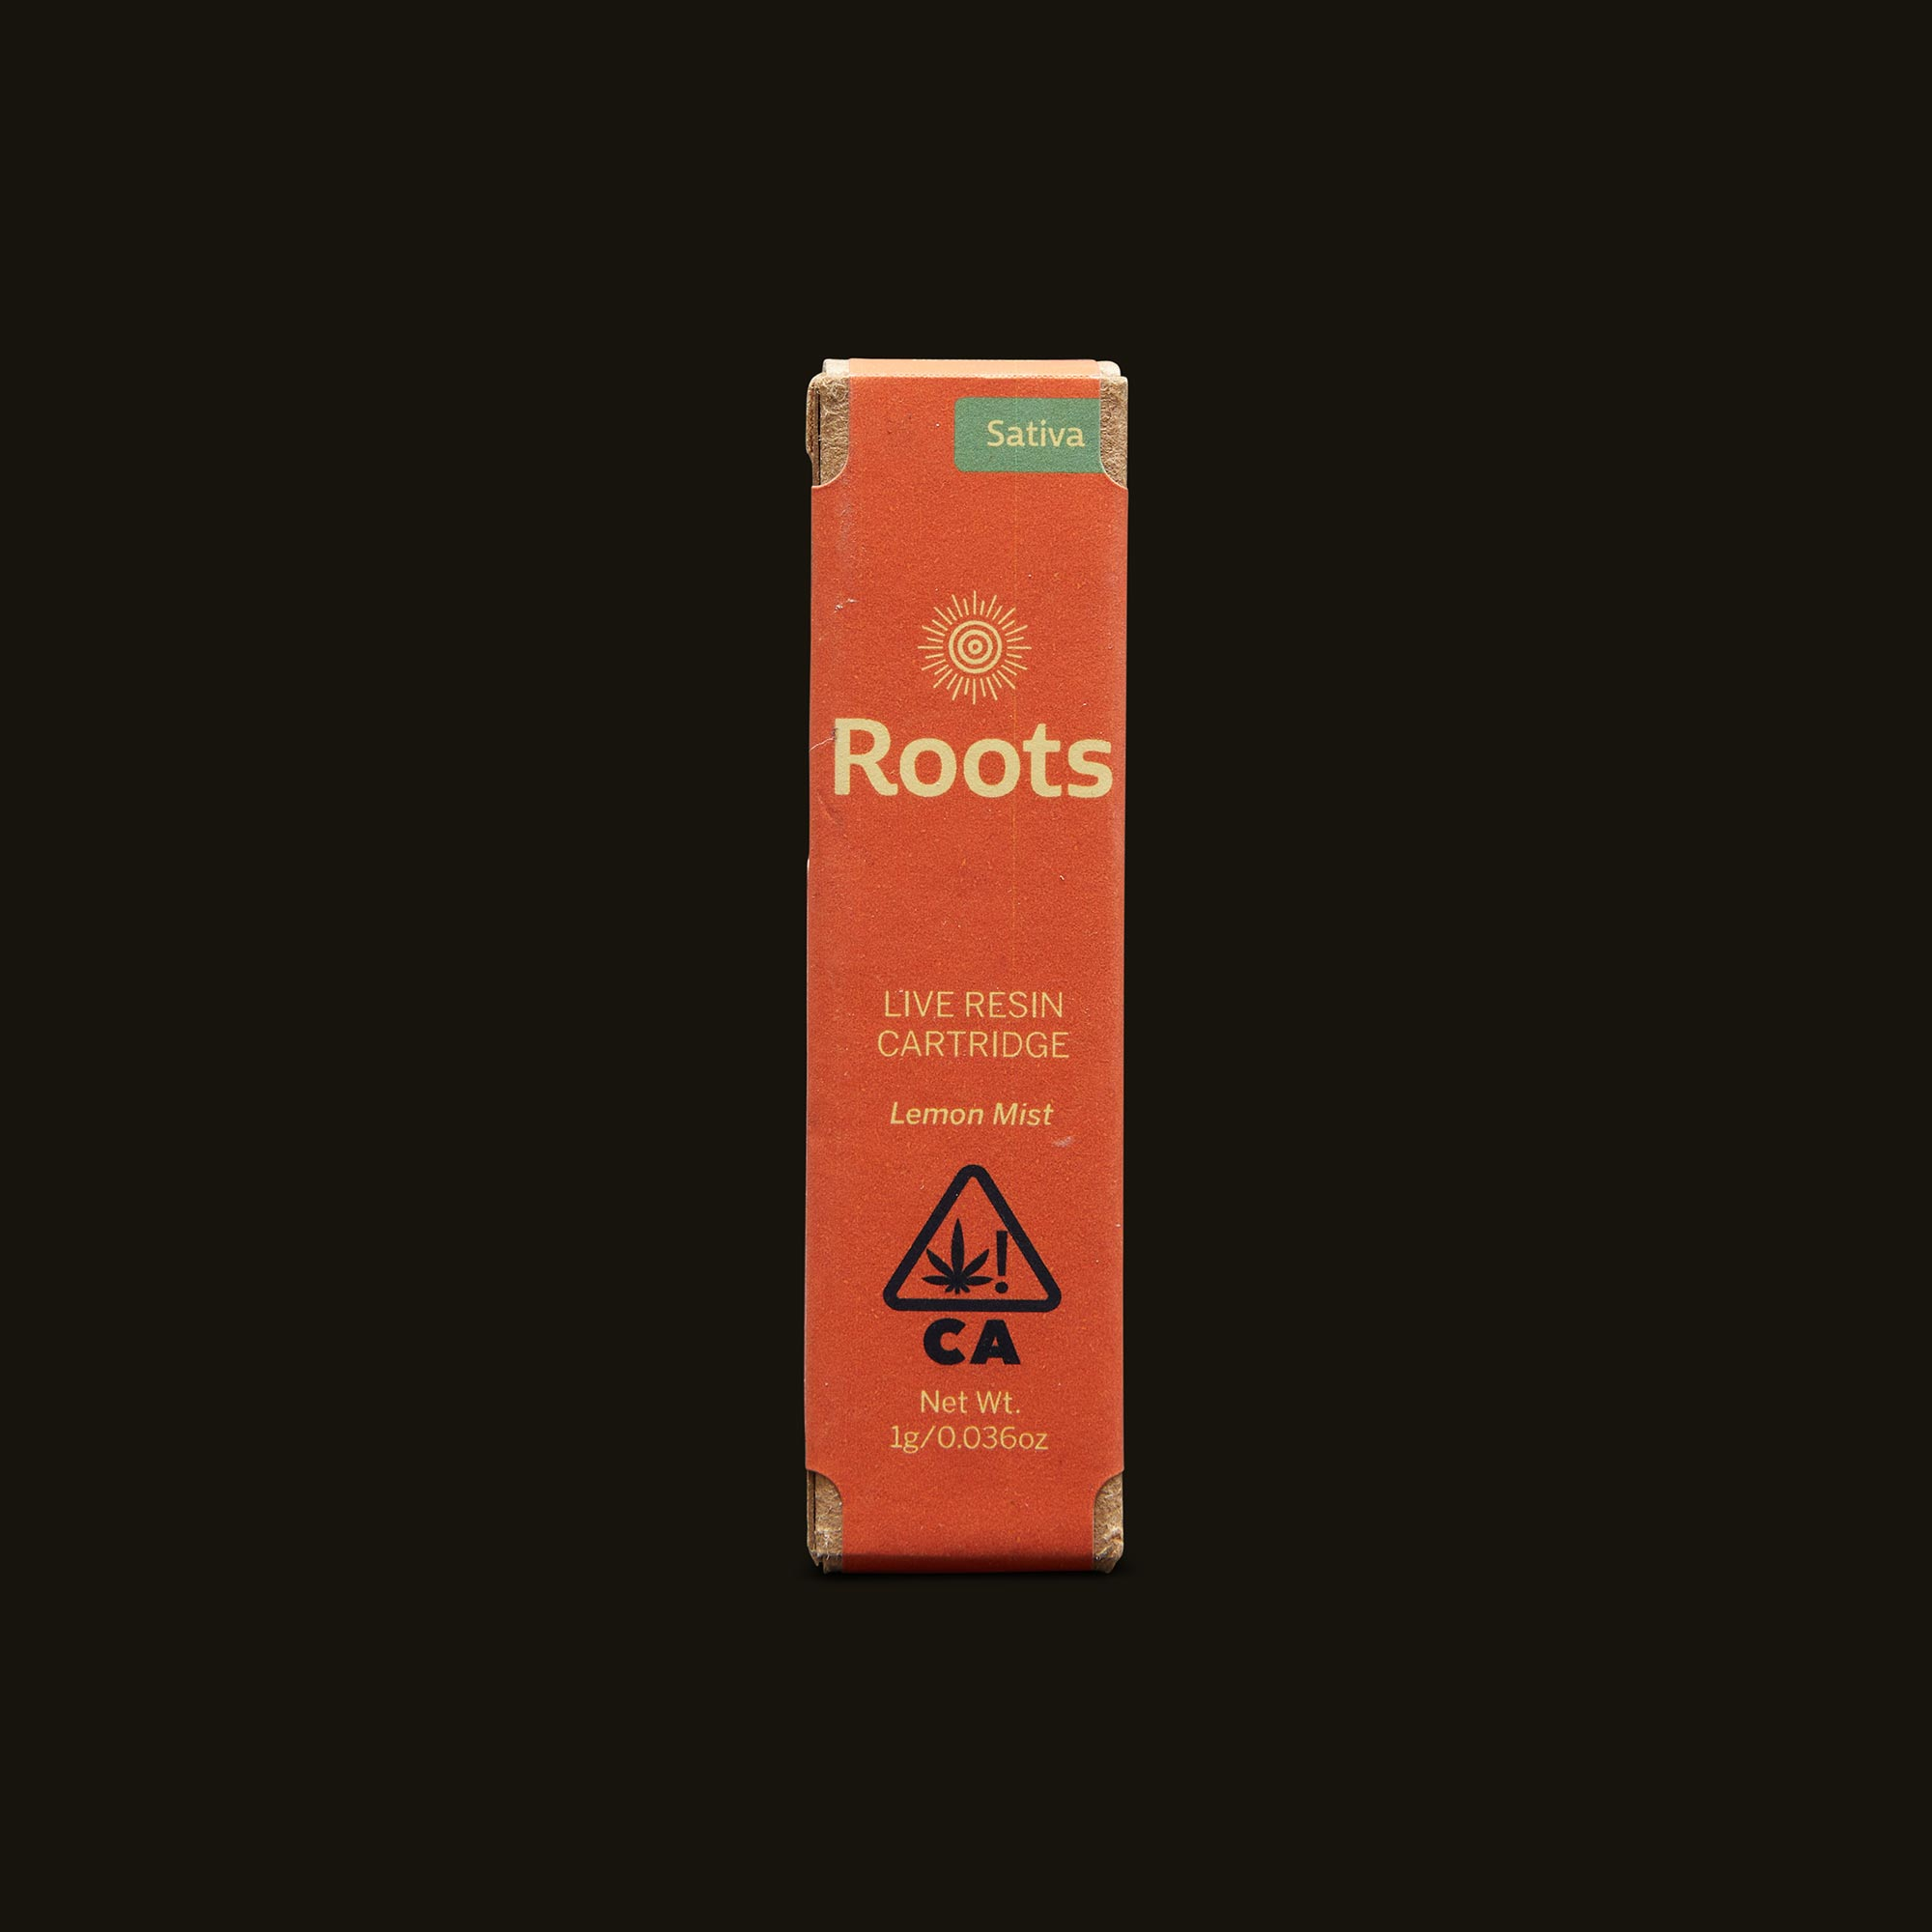 Roots Lemon Mist Live Resin Cartridge Front Packaging